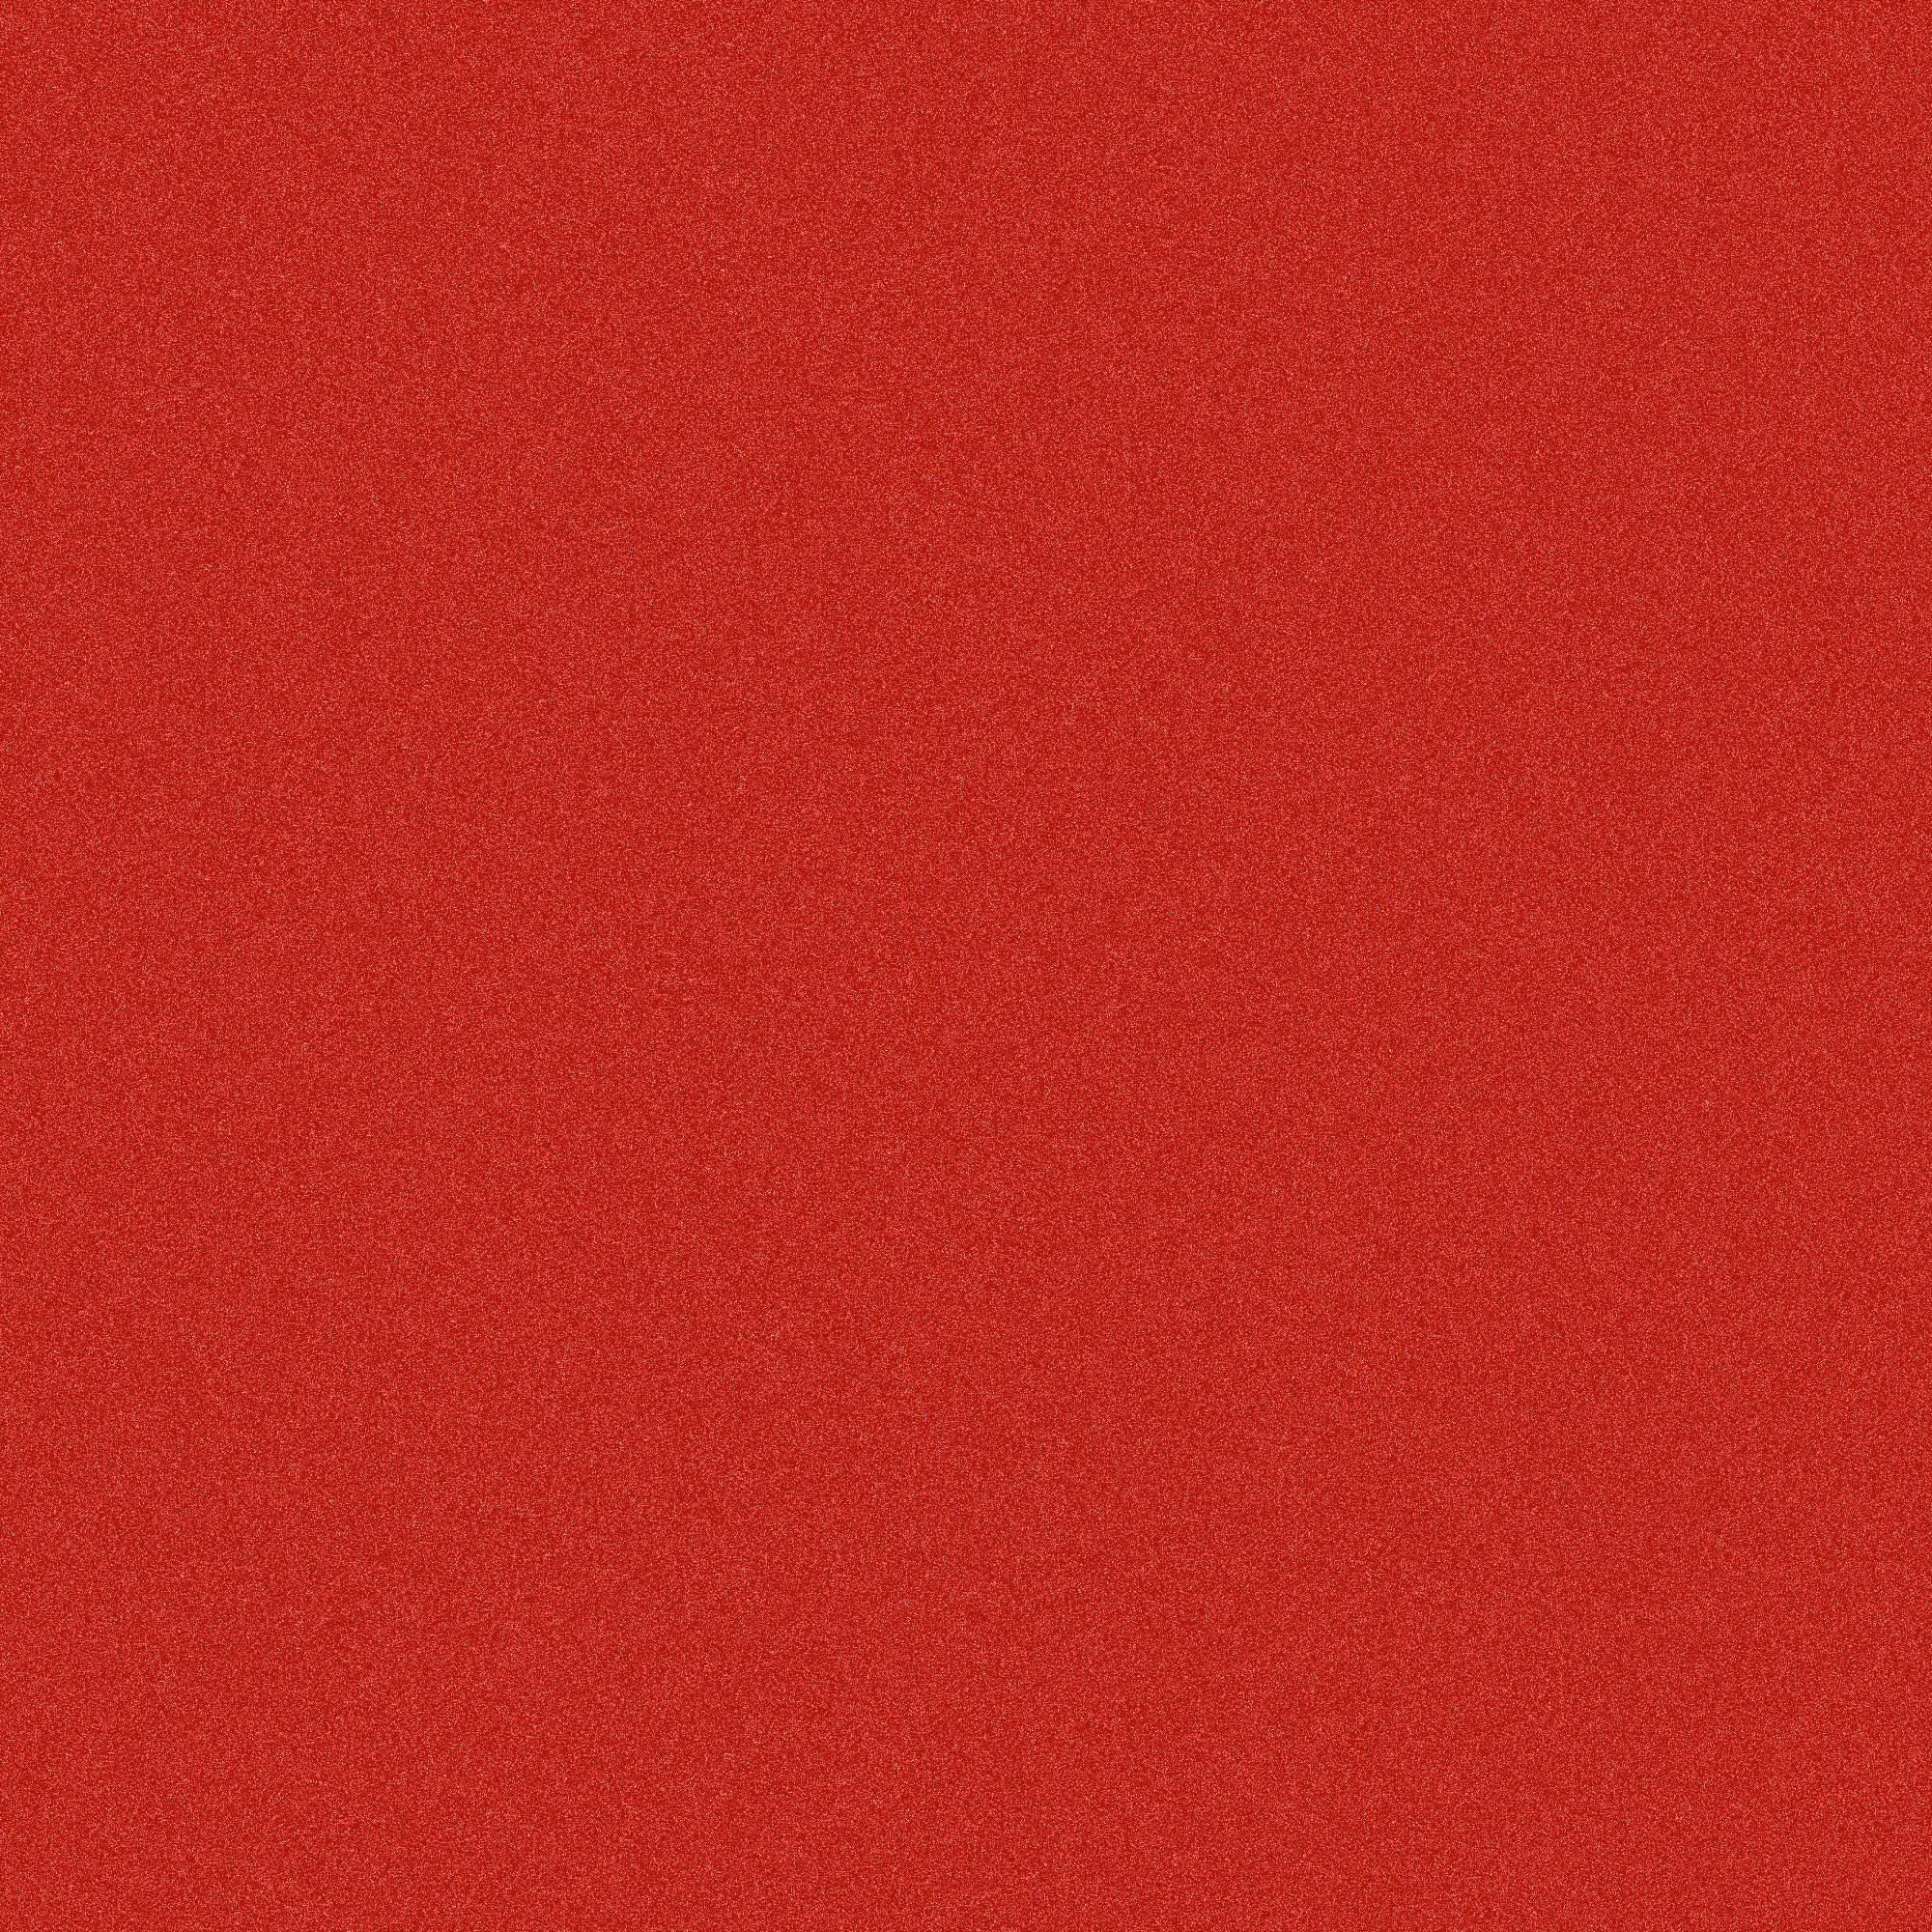 noize_background_red